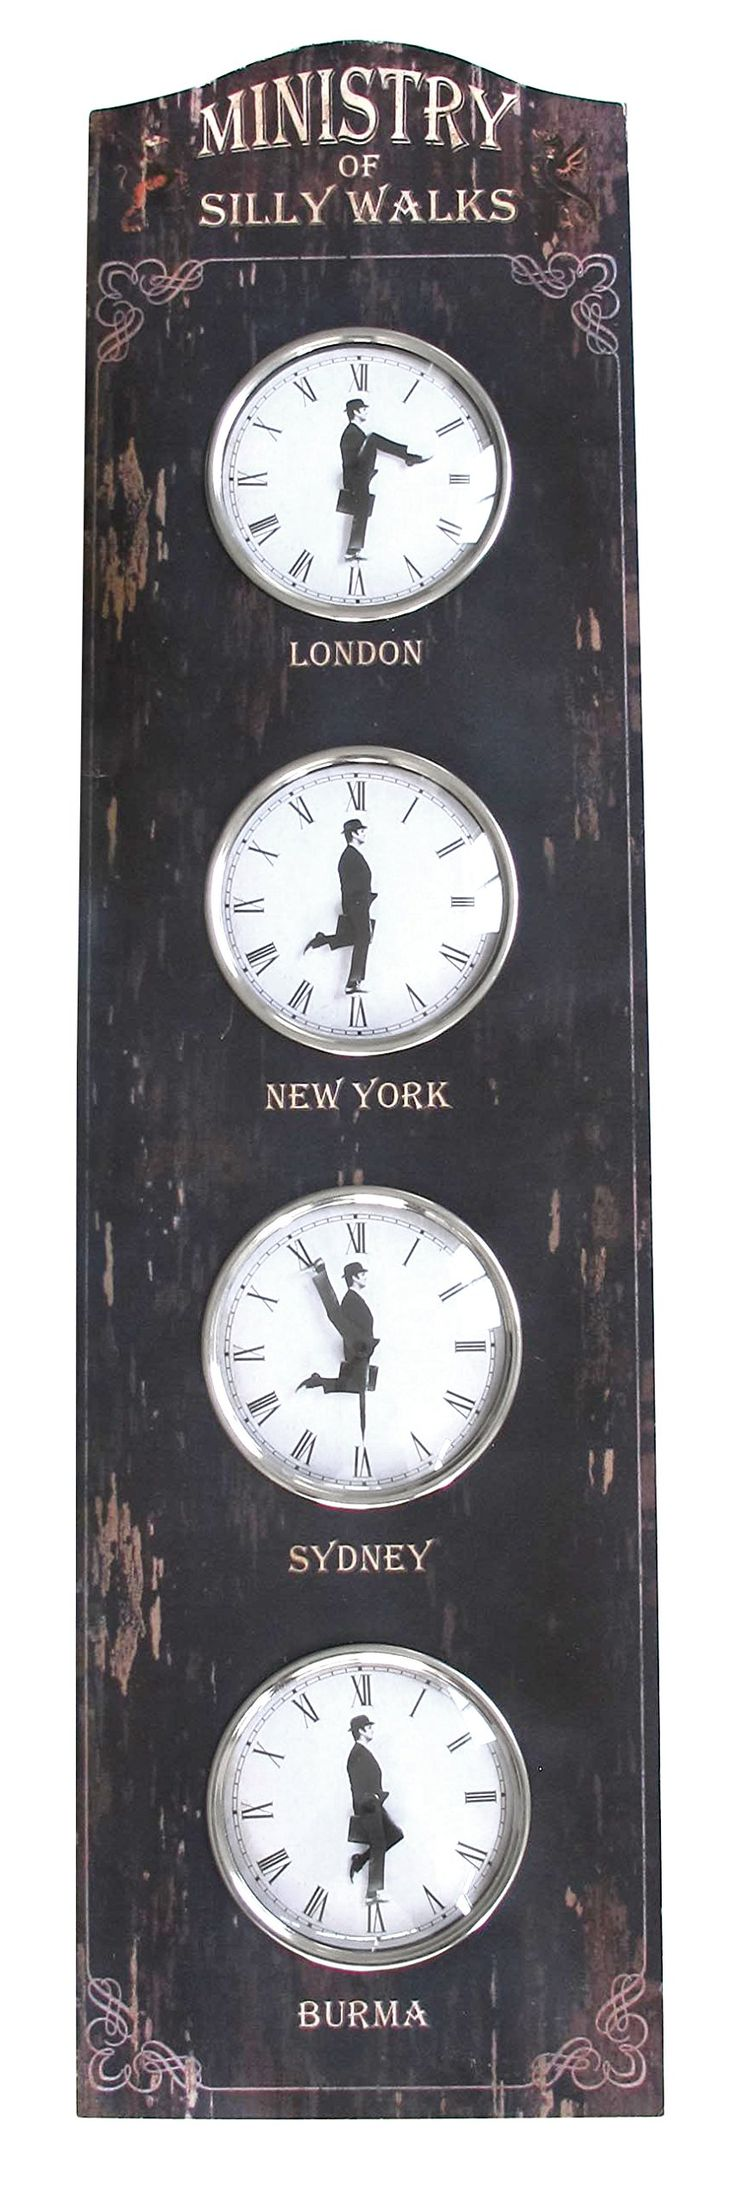 25 unique world clock ideas on pinterest world clock time ministry of silly walks world clock by dolltv monty python amipublicfo Gallery